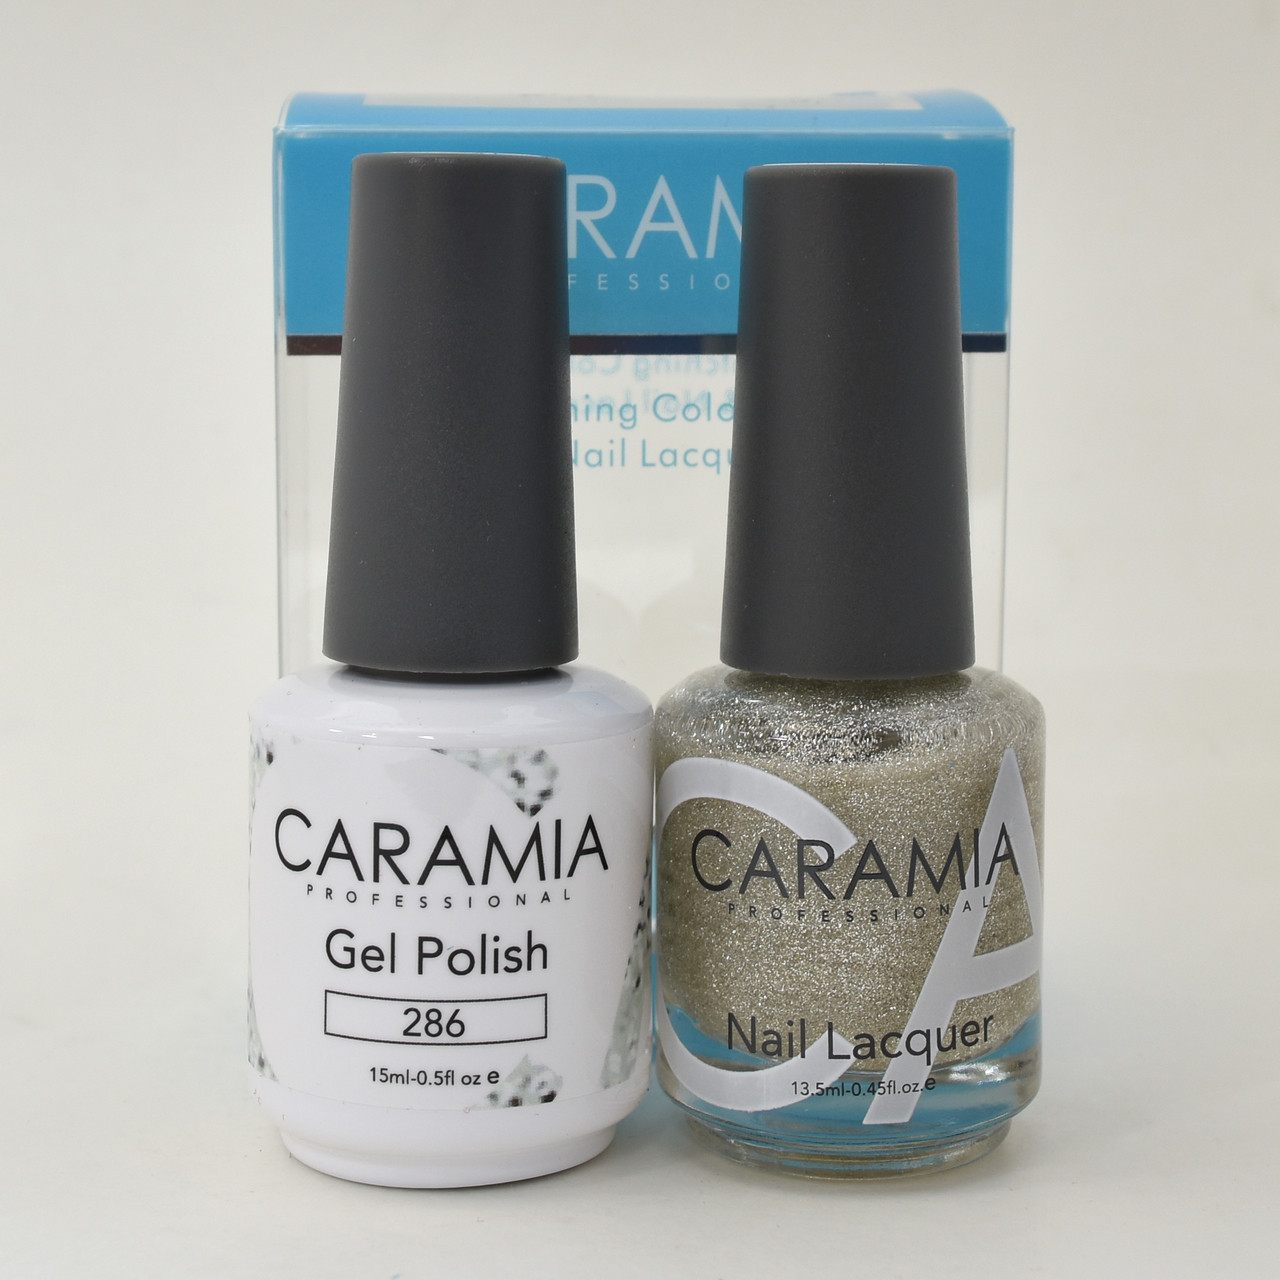 Caramia Gel Polish 15 mL & Nail Lacquer 13.5 mL Color 286 - Home ...